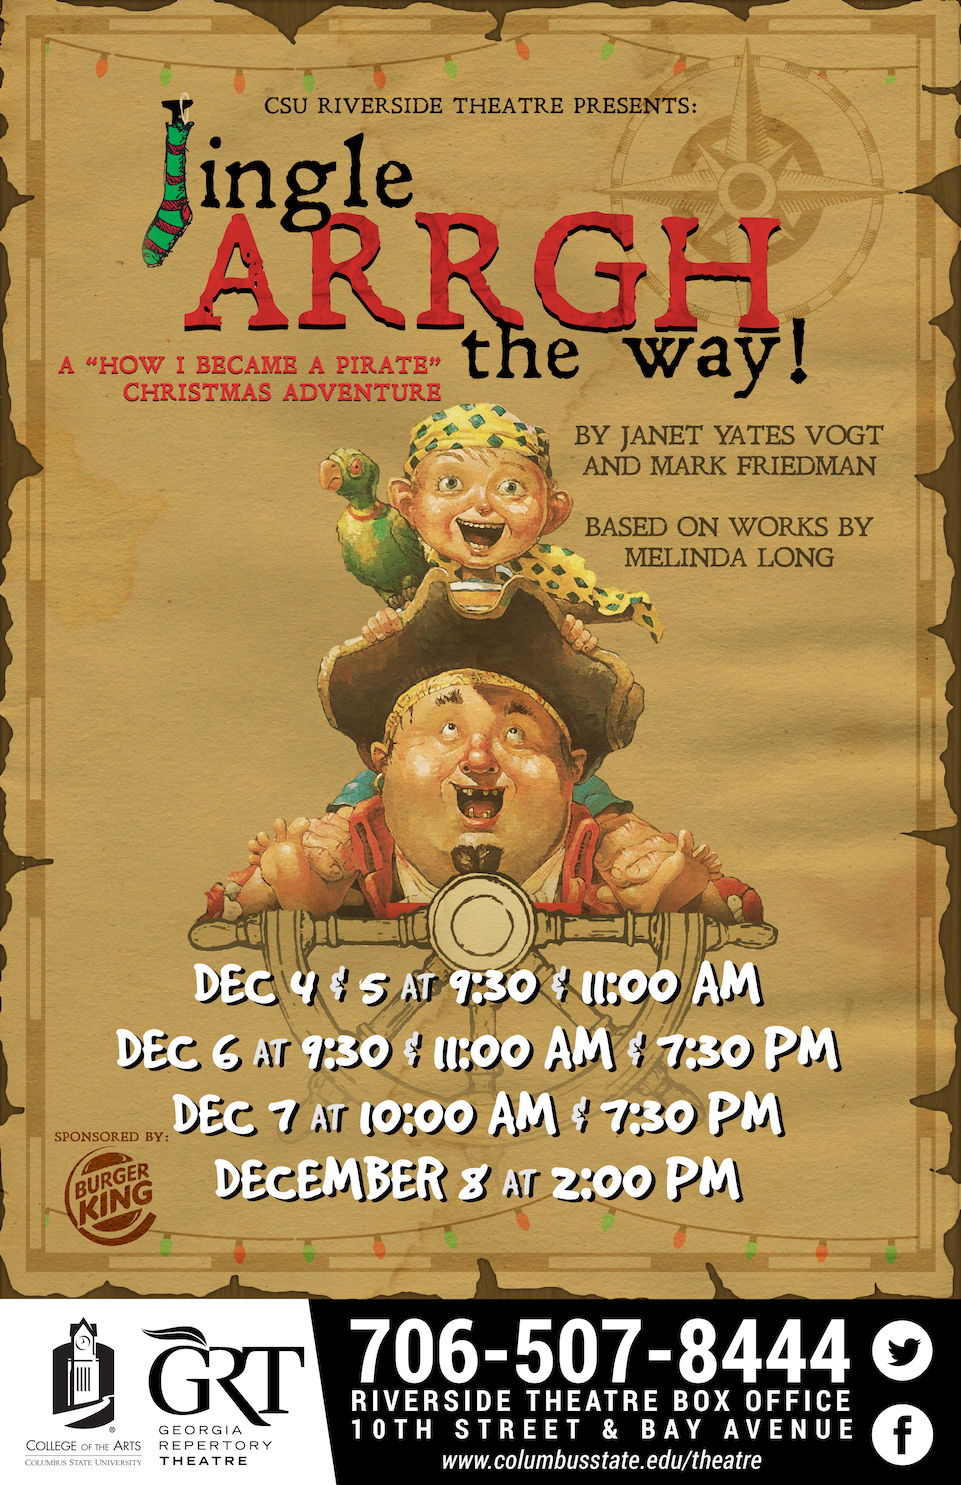 CSU Theatre: Jingle ARRGH the Way!!